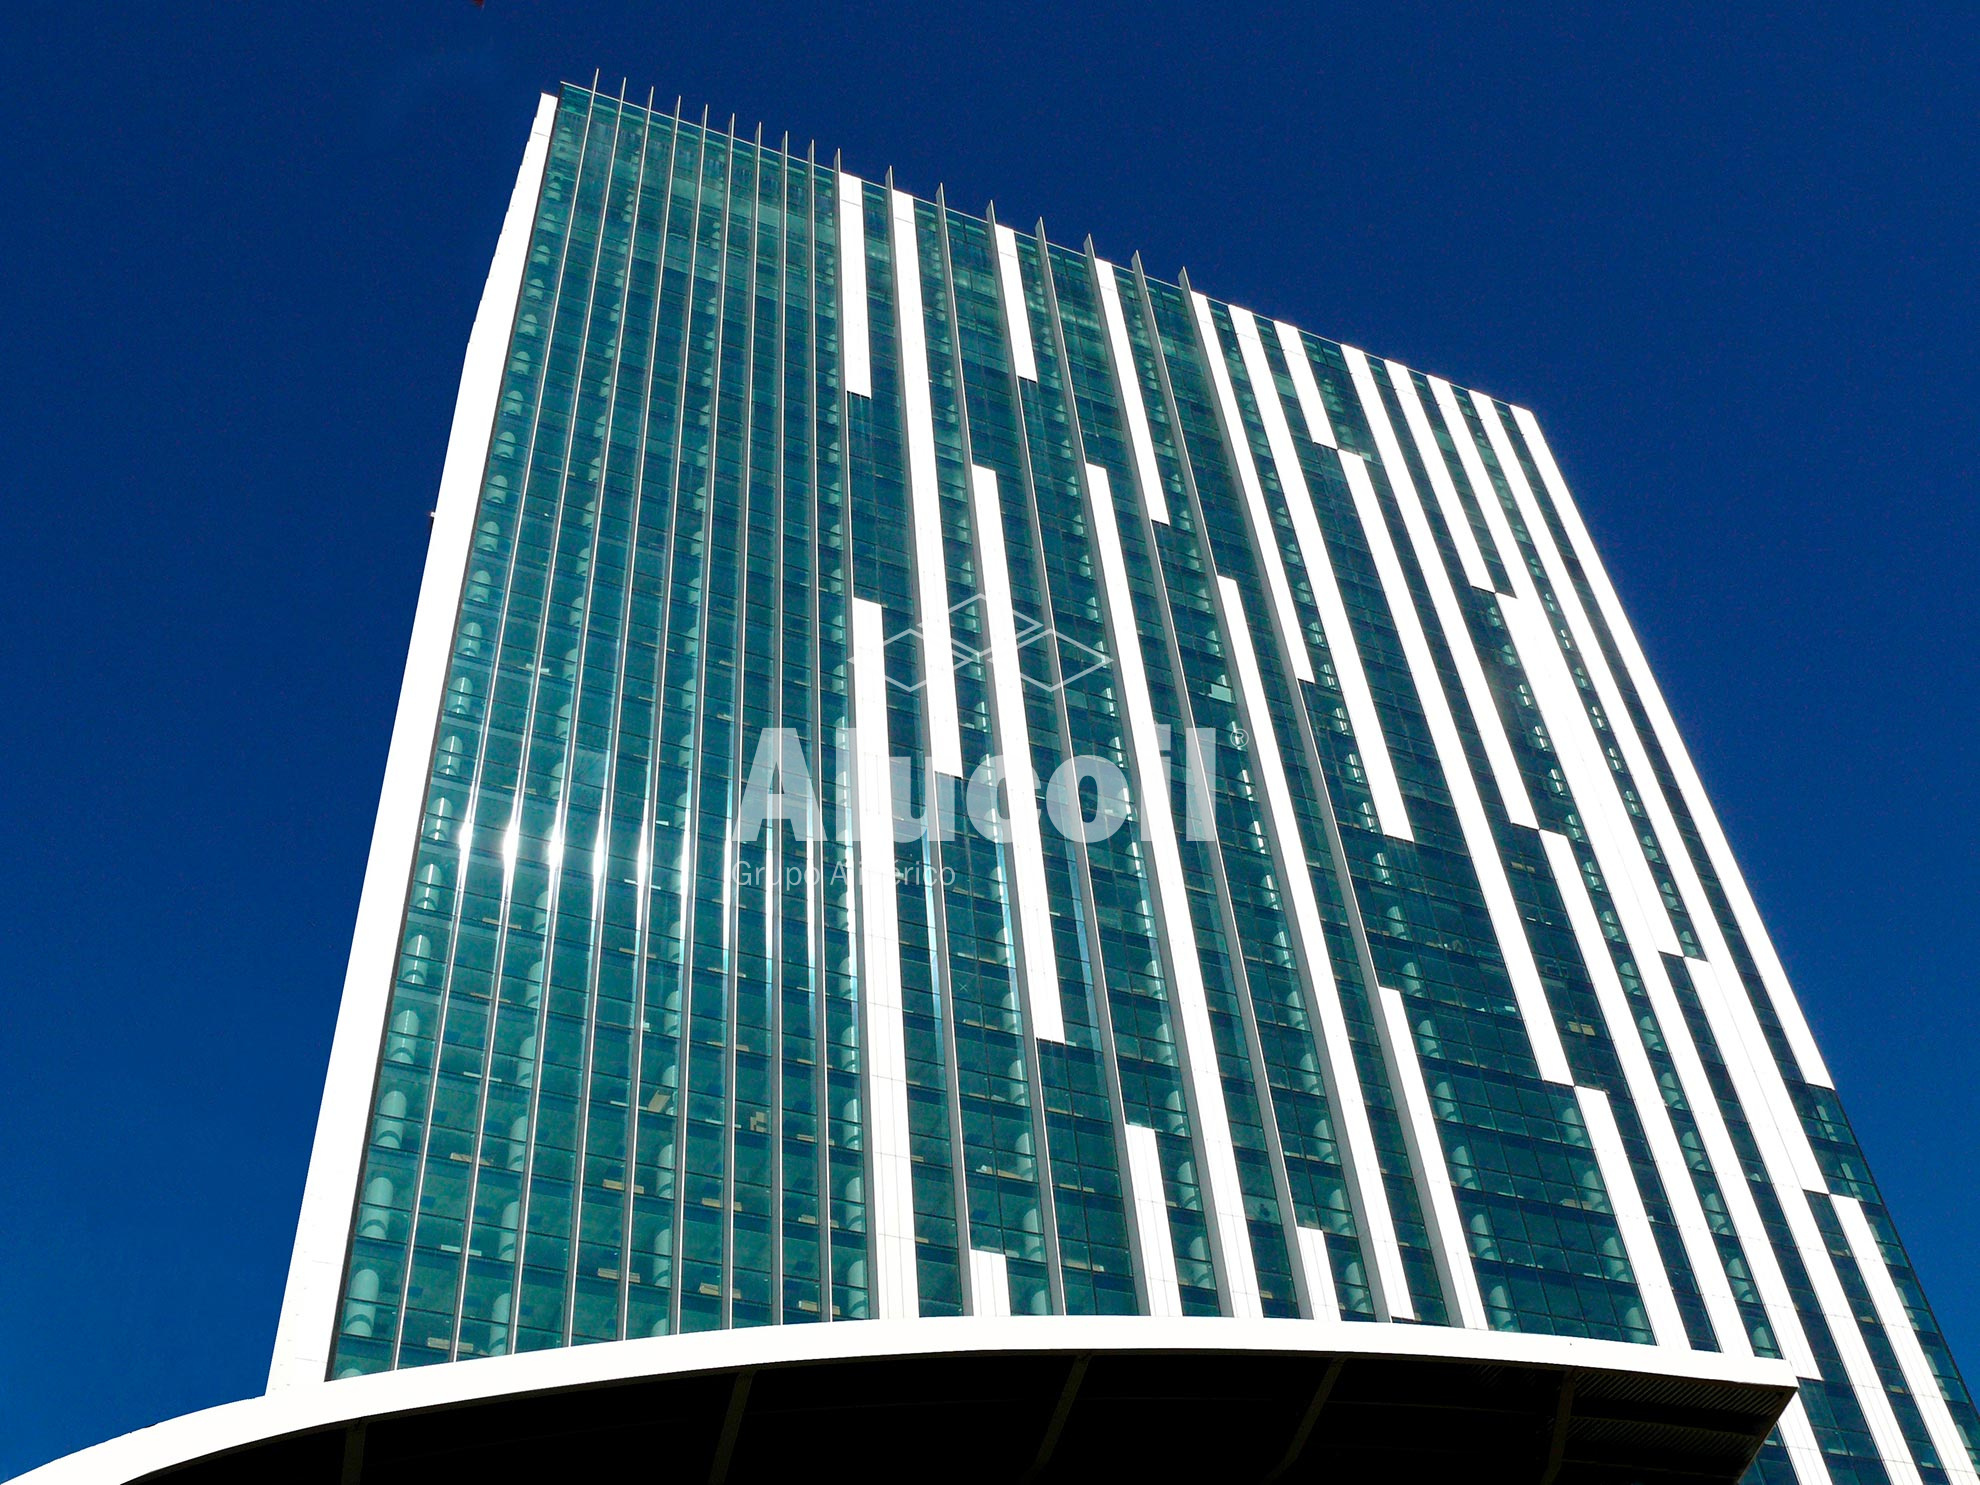 Torre Europarco